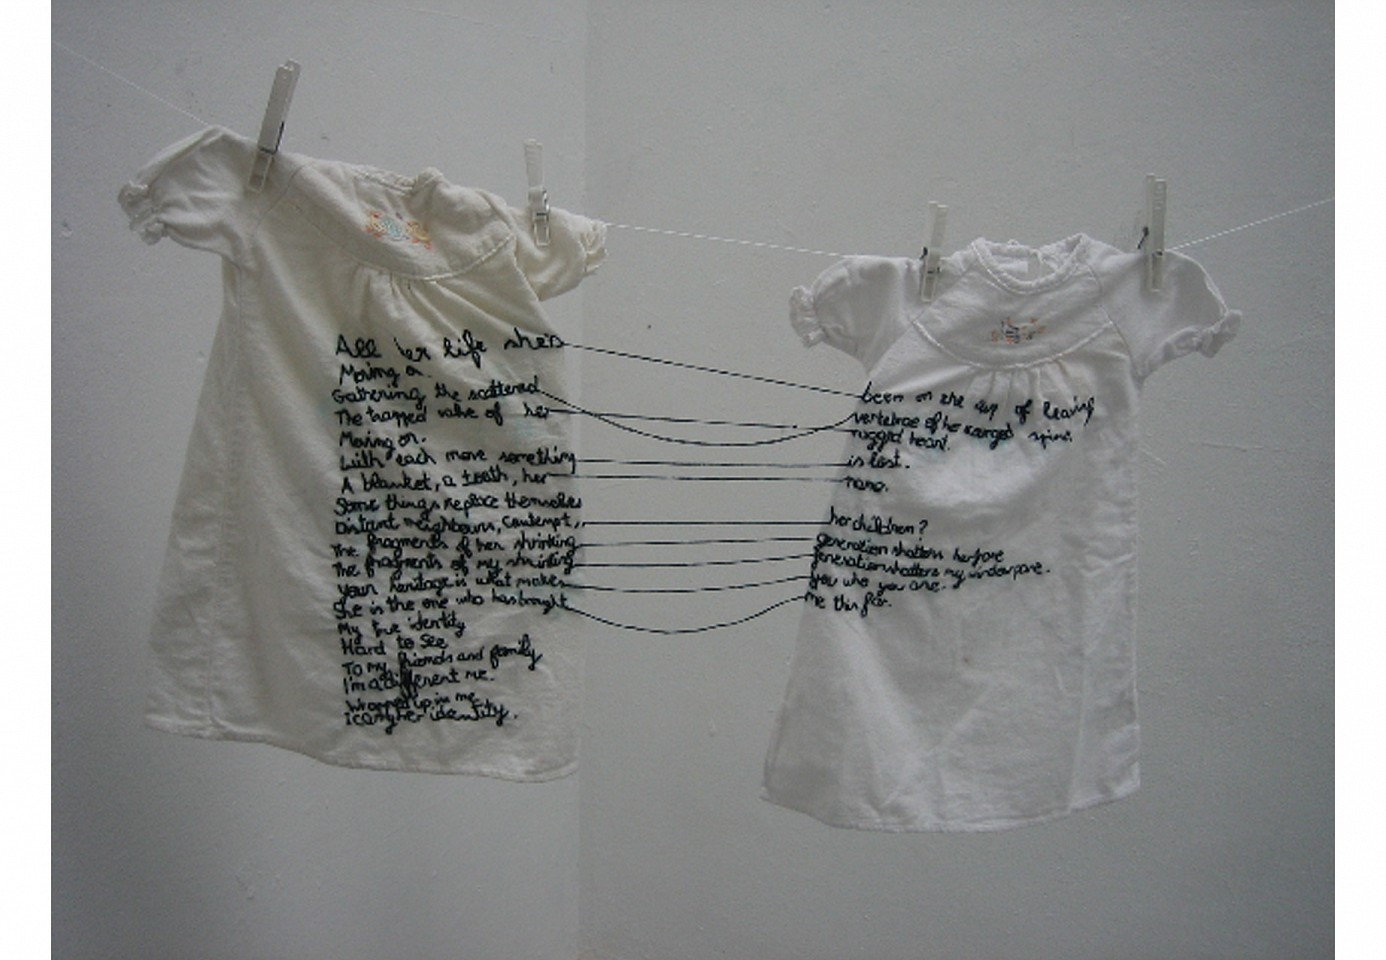 "<p><span class=""viewer-caption-artist"">Aya Haidar</span></p> <p><span class=""viewer-caption-title""><i>The Stitch is Lost Unless the Thread is Knotted</i></span>, <span class=""viewer-caption-year"">2008</span></p> <p><span class=""viewer-caption-media"">Shirts and thread</span></p> <p><span class=""viewer-caption-inventory"">AYH0060</span></p> <p><span class=""viewer-caption-aux""></span></p>"